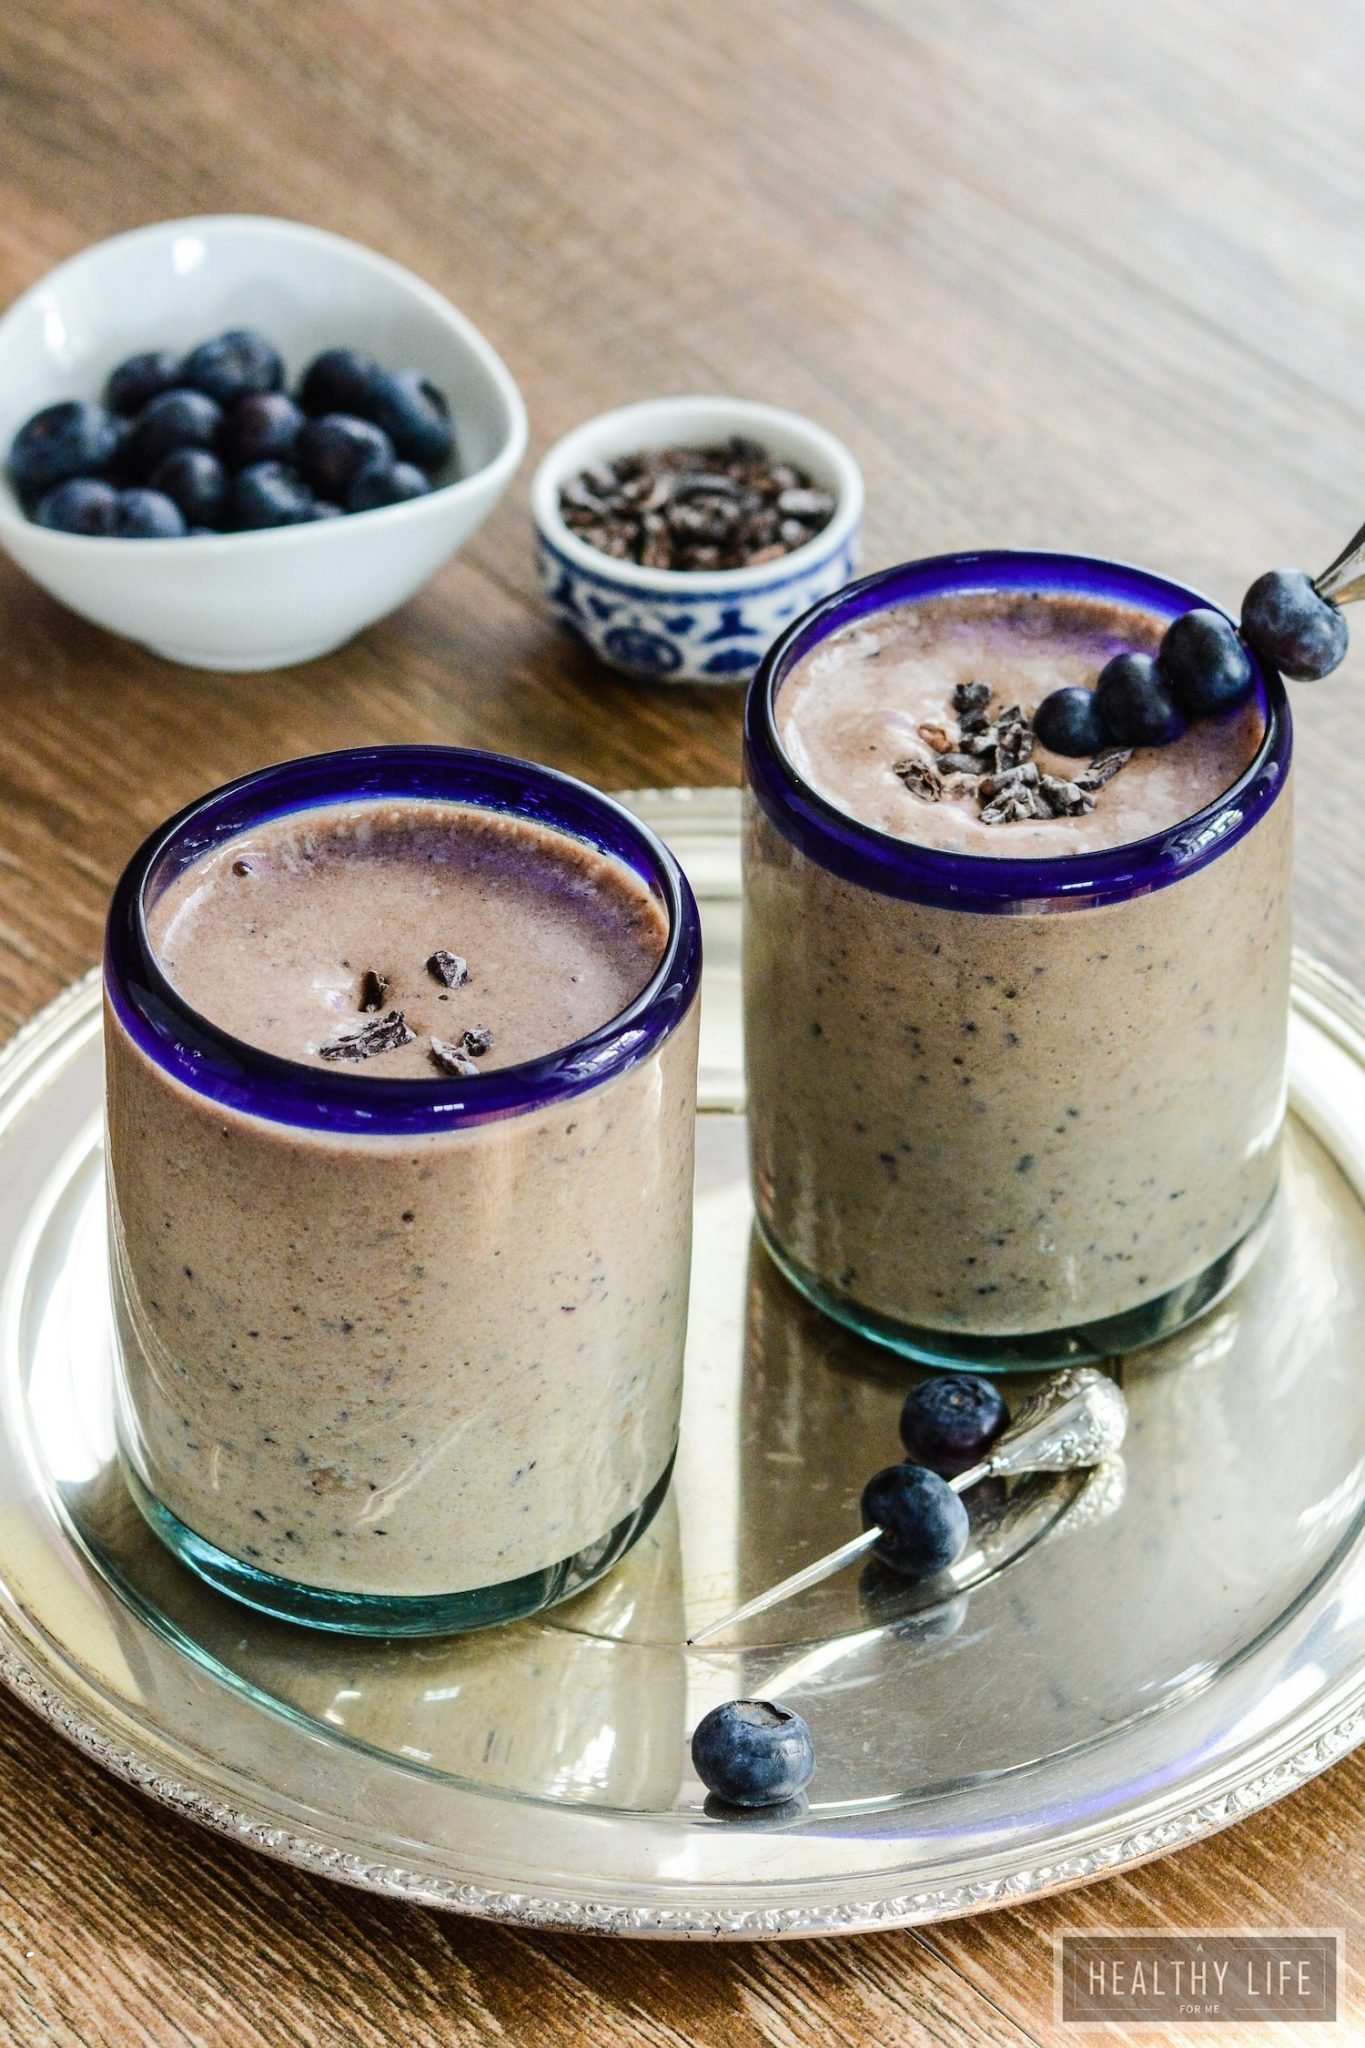 Double Chocolate Blueberry Protein Smoothie - A Healthy Life